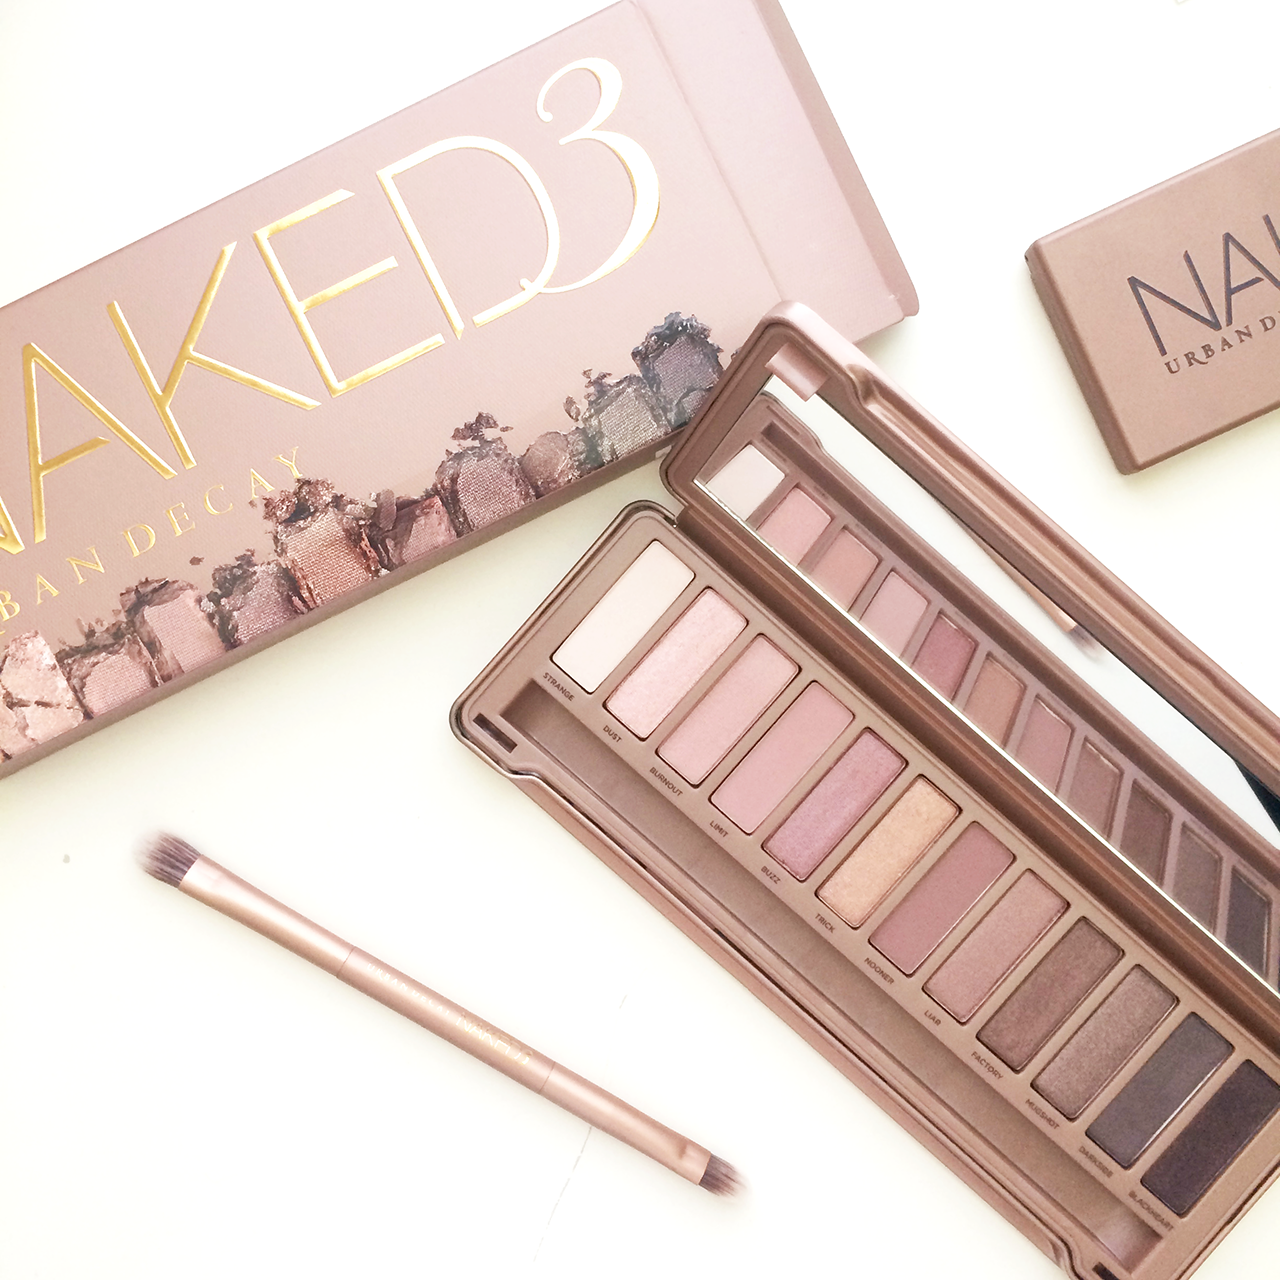 urban decay naked 3 palette, should i buy the naked 3 palette, is the naked 3 palette the same as the naked 1 and naked 2 palette, urban decay naked palettes